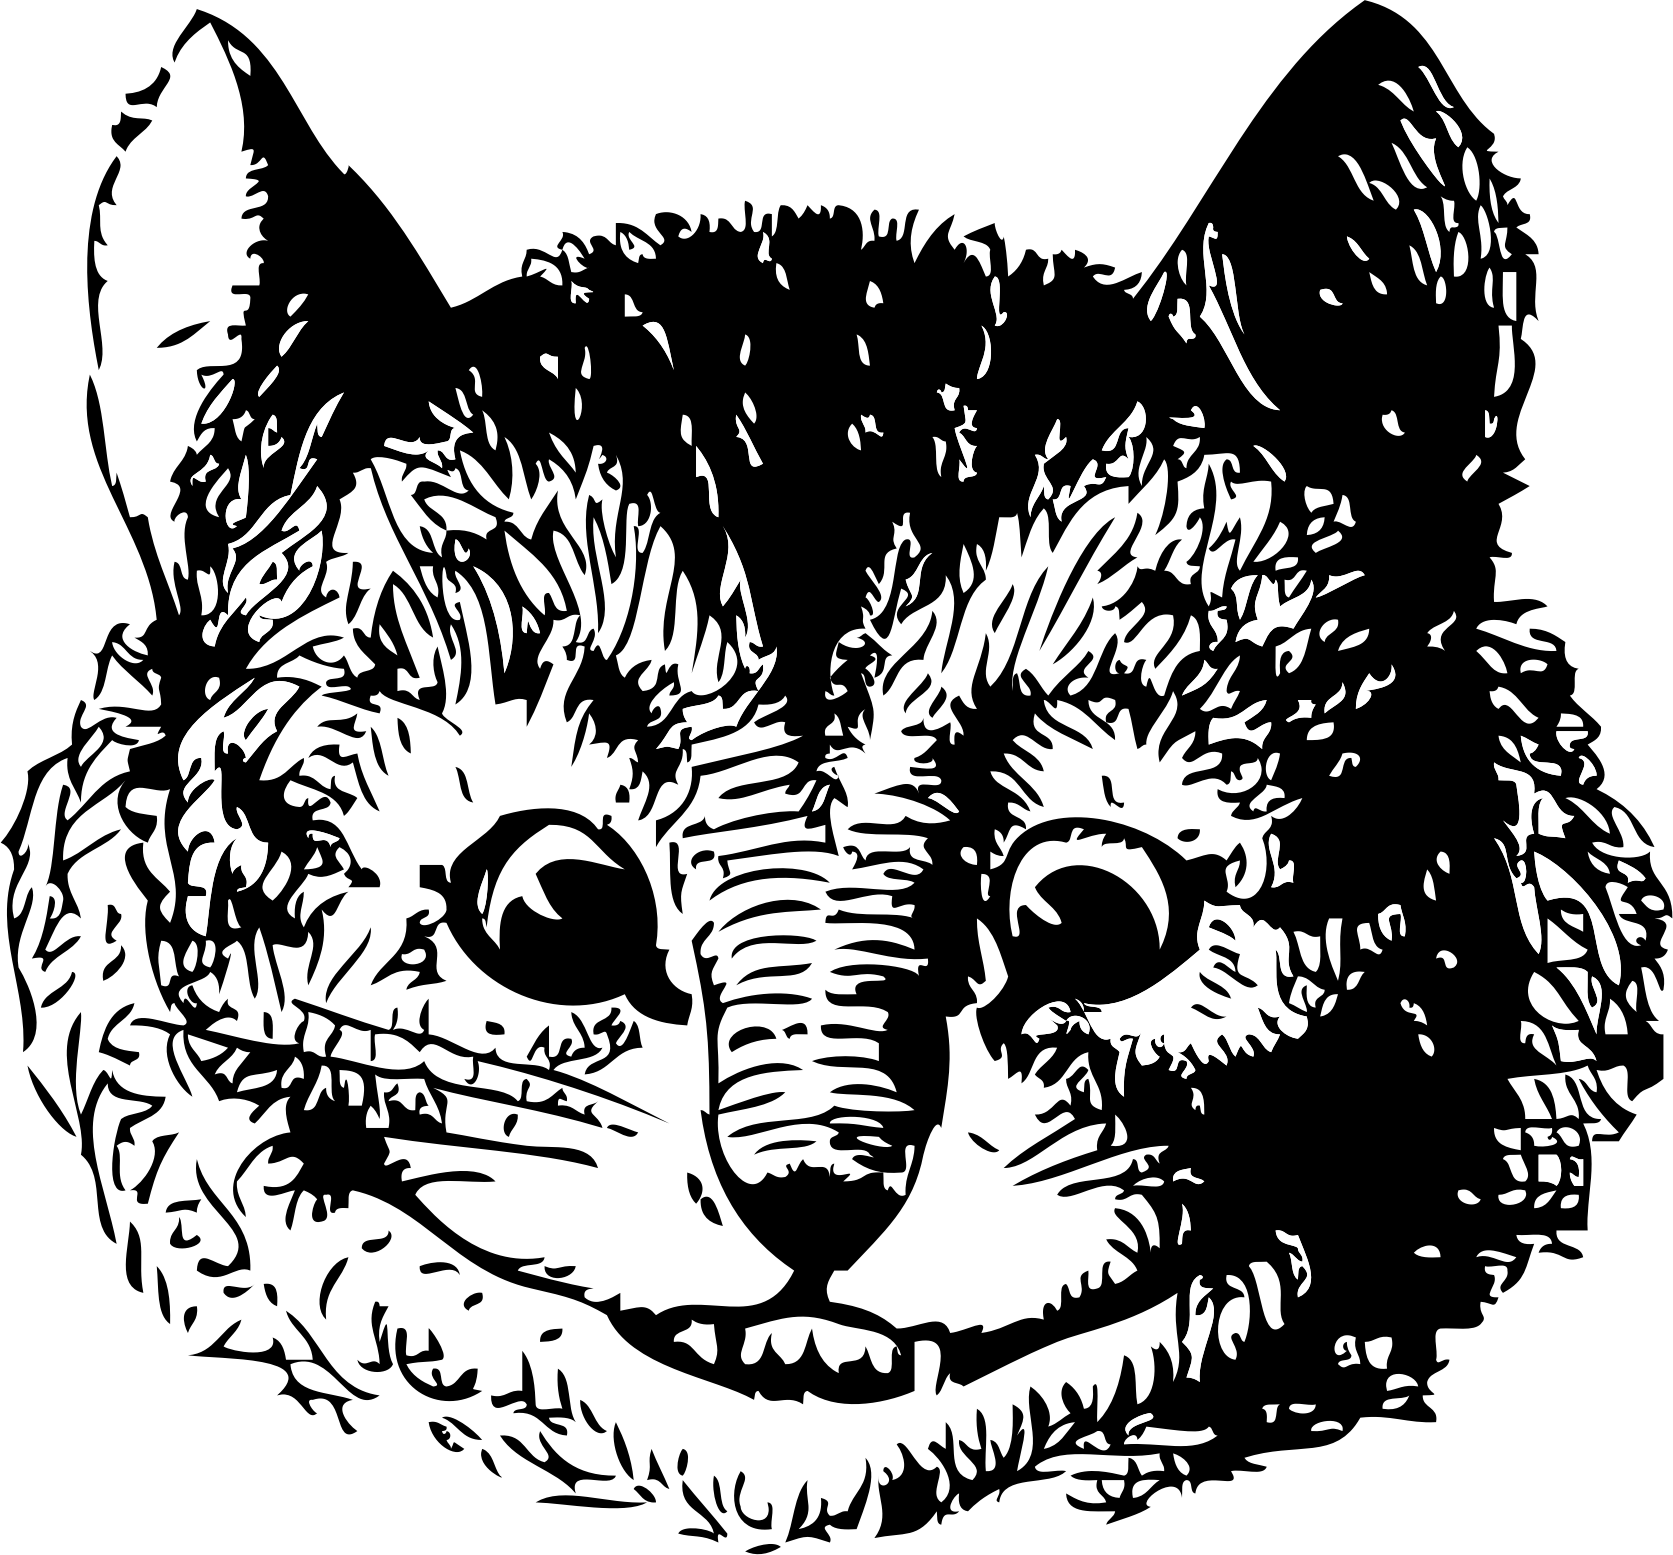 The Cheshire cat from Alice in wonderland by kinetoons